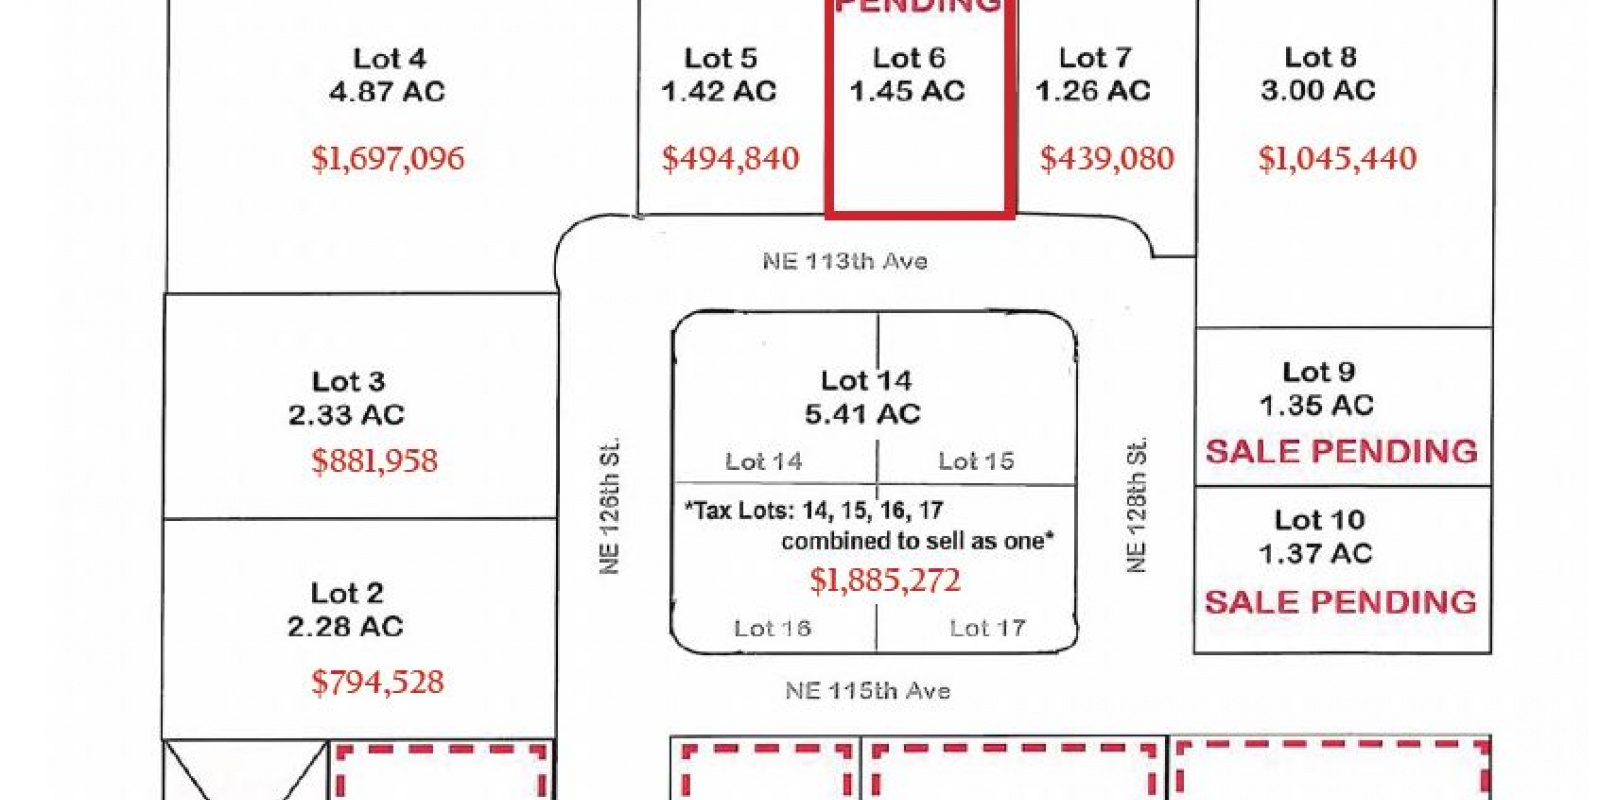 NE 117th Ave & 125th St. Vancouver, WA 98662, ,Land,For Sale,Glenwood Industrial Park,NE 117th Ave & 125th St. Vancouver, WA 98662,1252